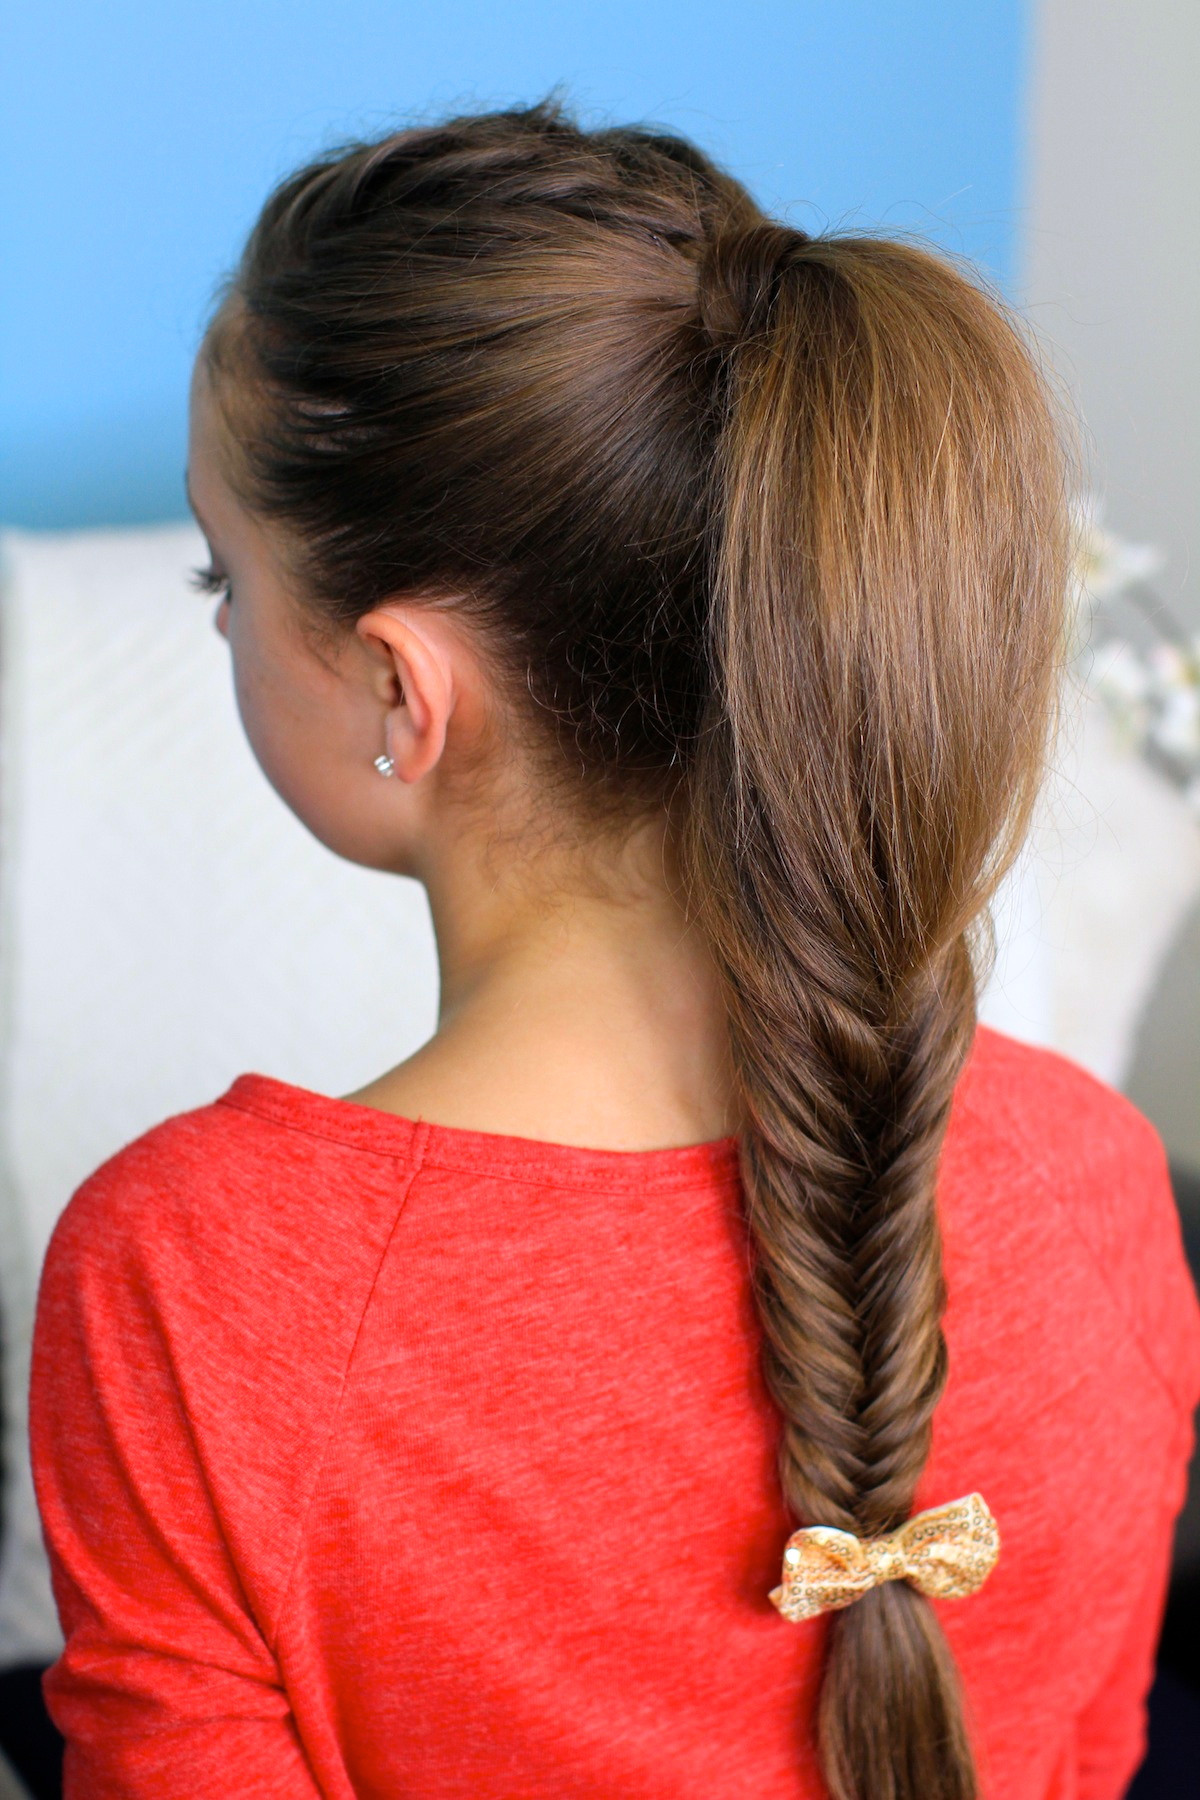 Best ideas about Braid Ponytail Hairstyles . Save or Pin Fishtail Braids Cute Girls Hairstyles Now.